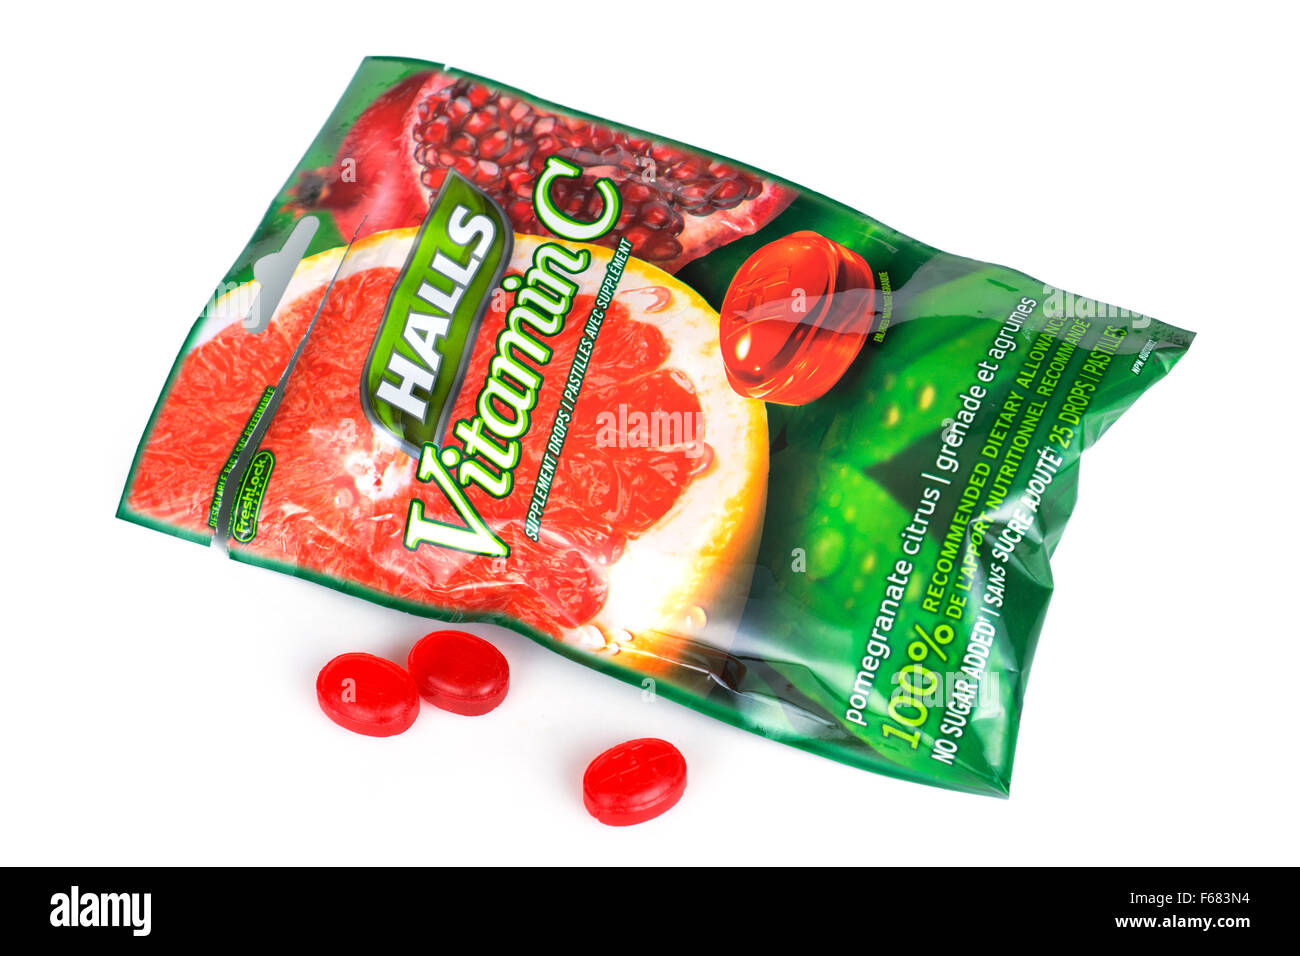 Packet of Lozenges Vitamin C Drops - Stock Image